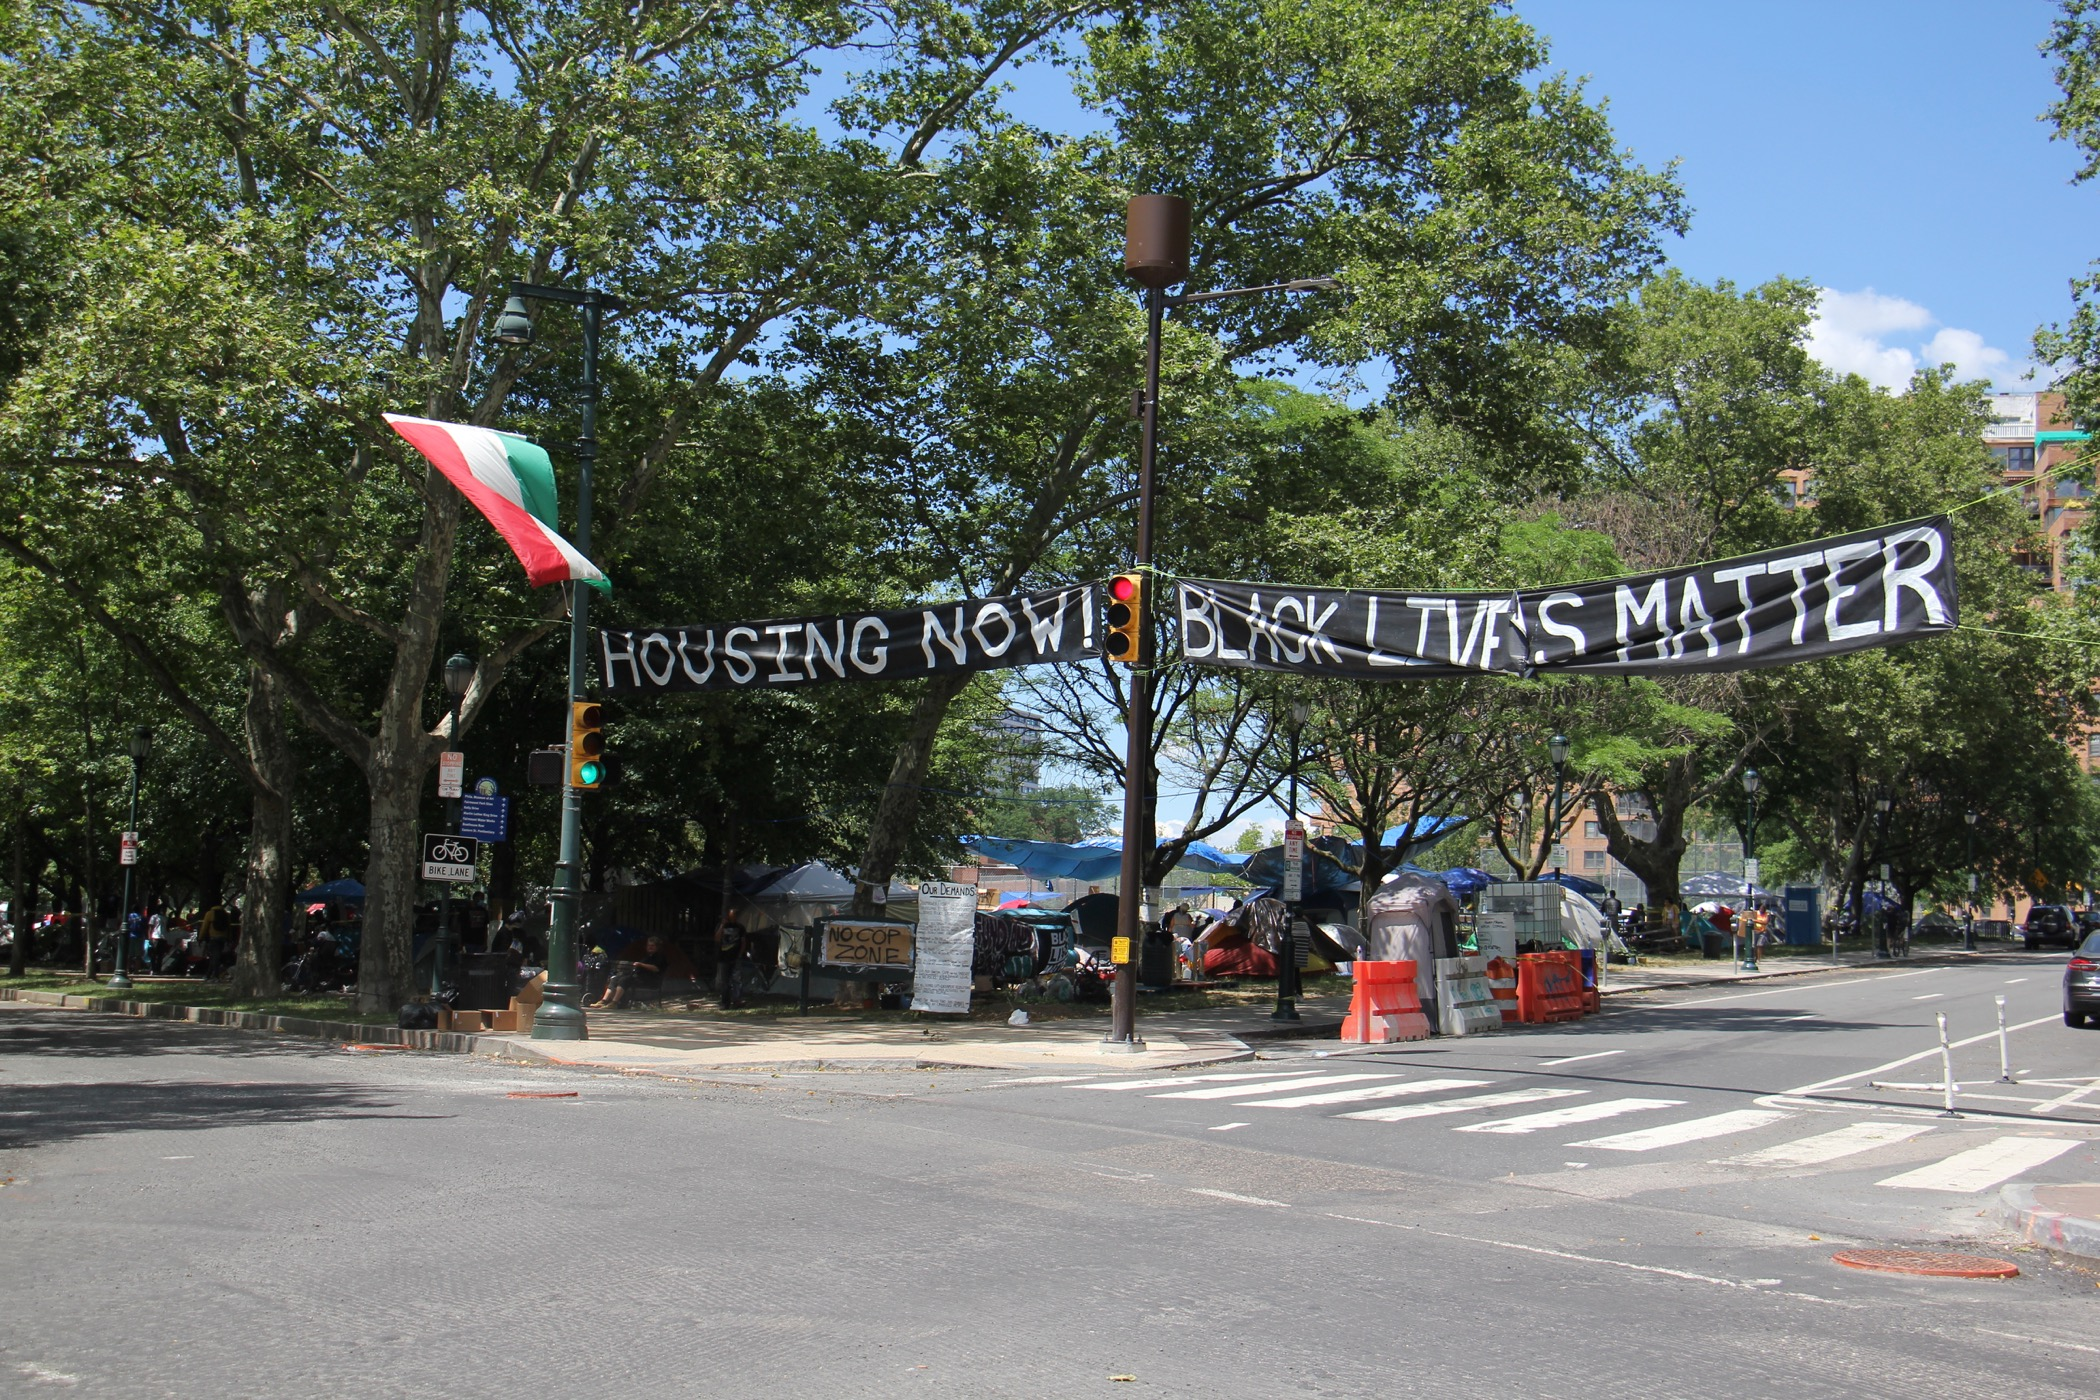 Homeless encampment on Ben Franklin Parkway